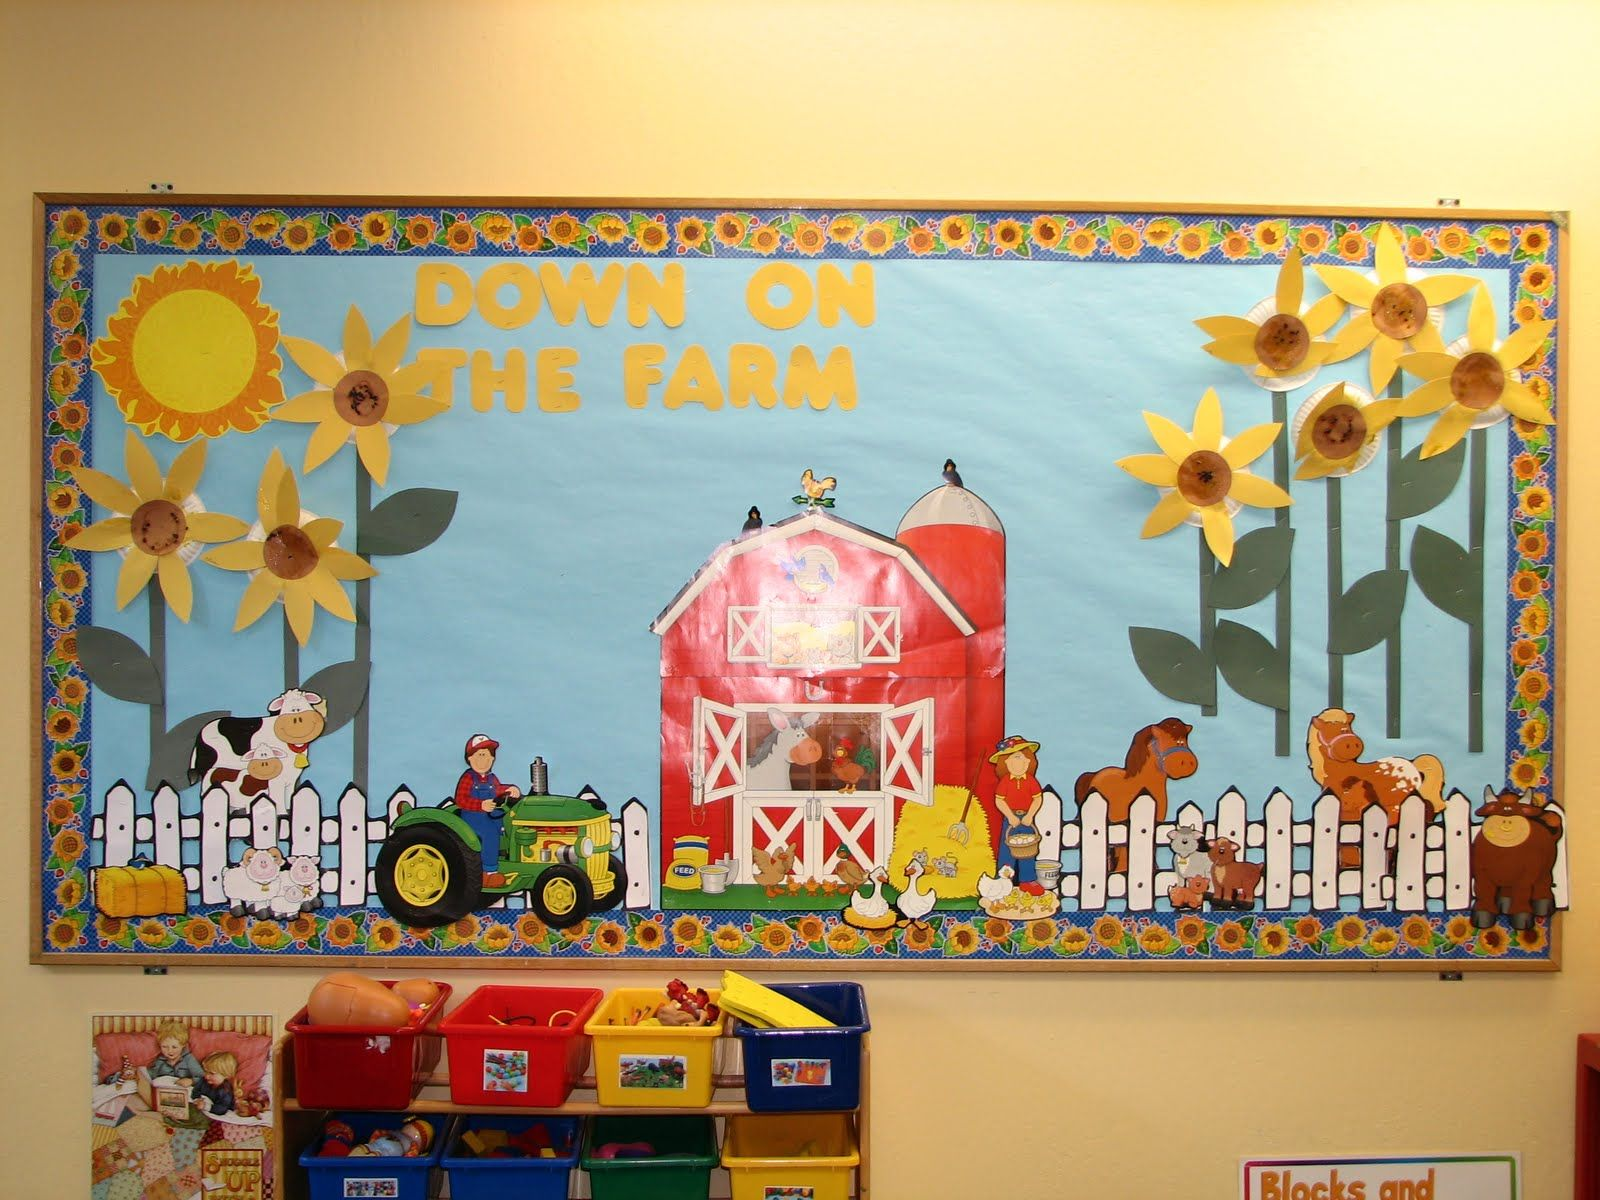 Art craft ideas and bulletin boards for elementary schools vegetable - Apple Bulletin Board Used The Same Bulletin Board Set As The Picture Below Just Displayed